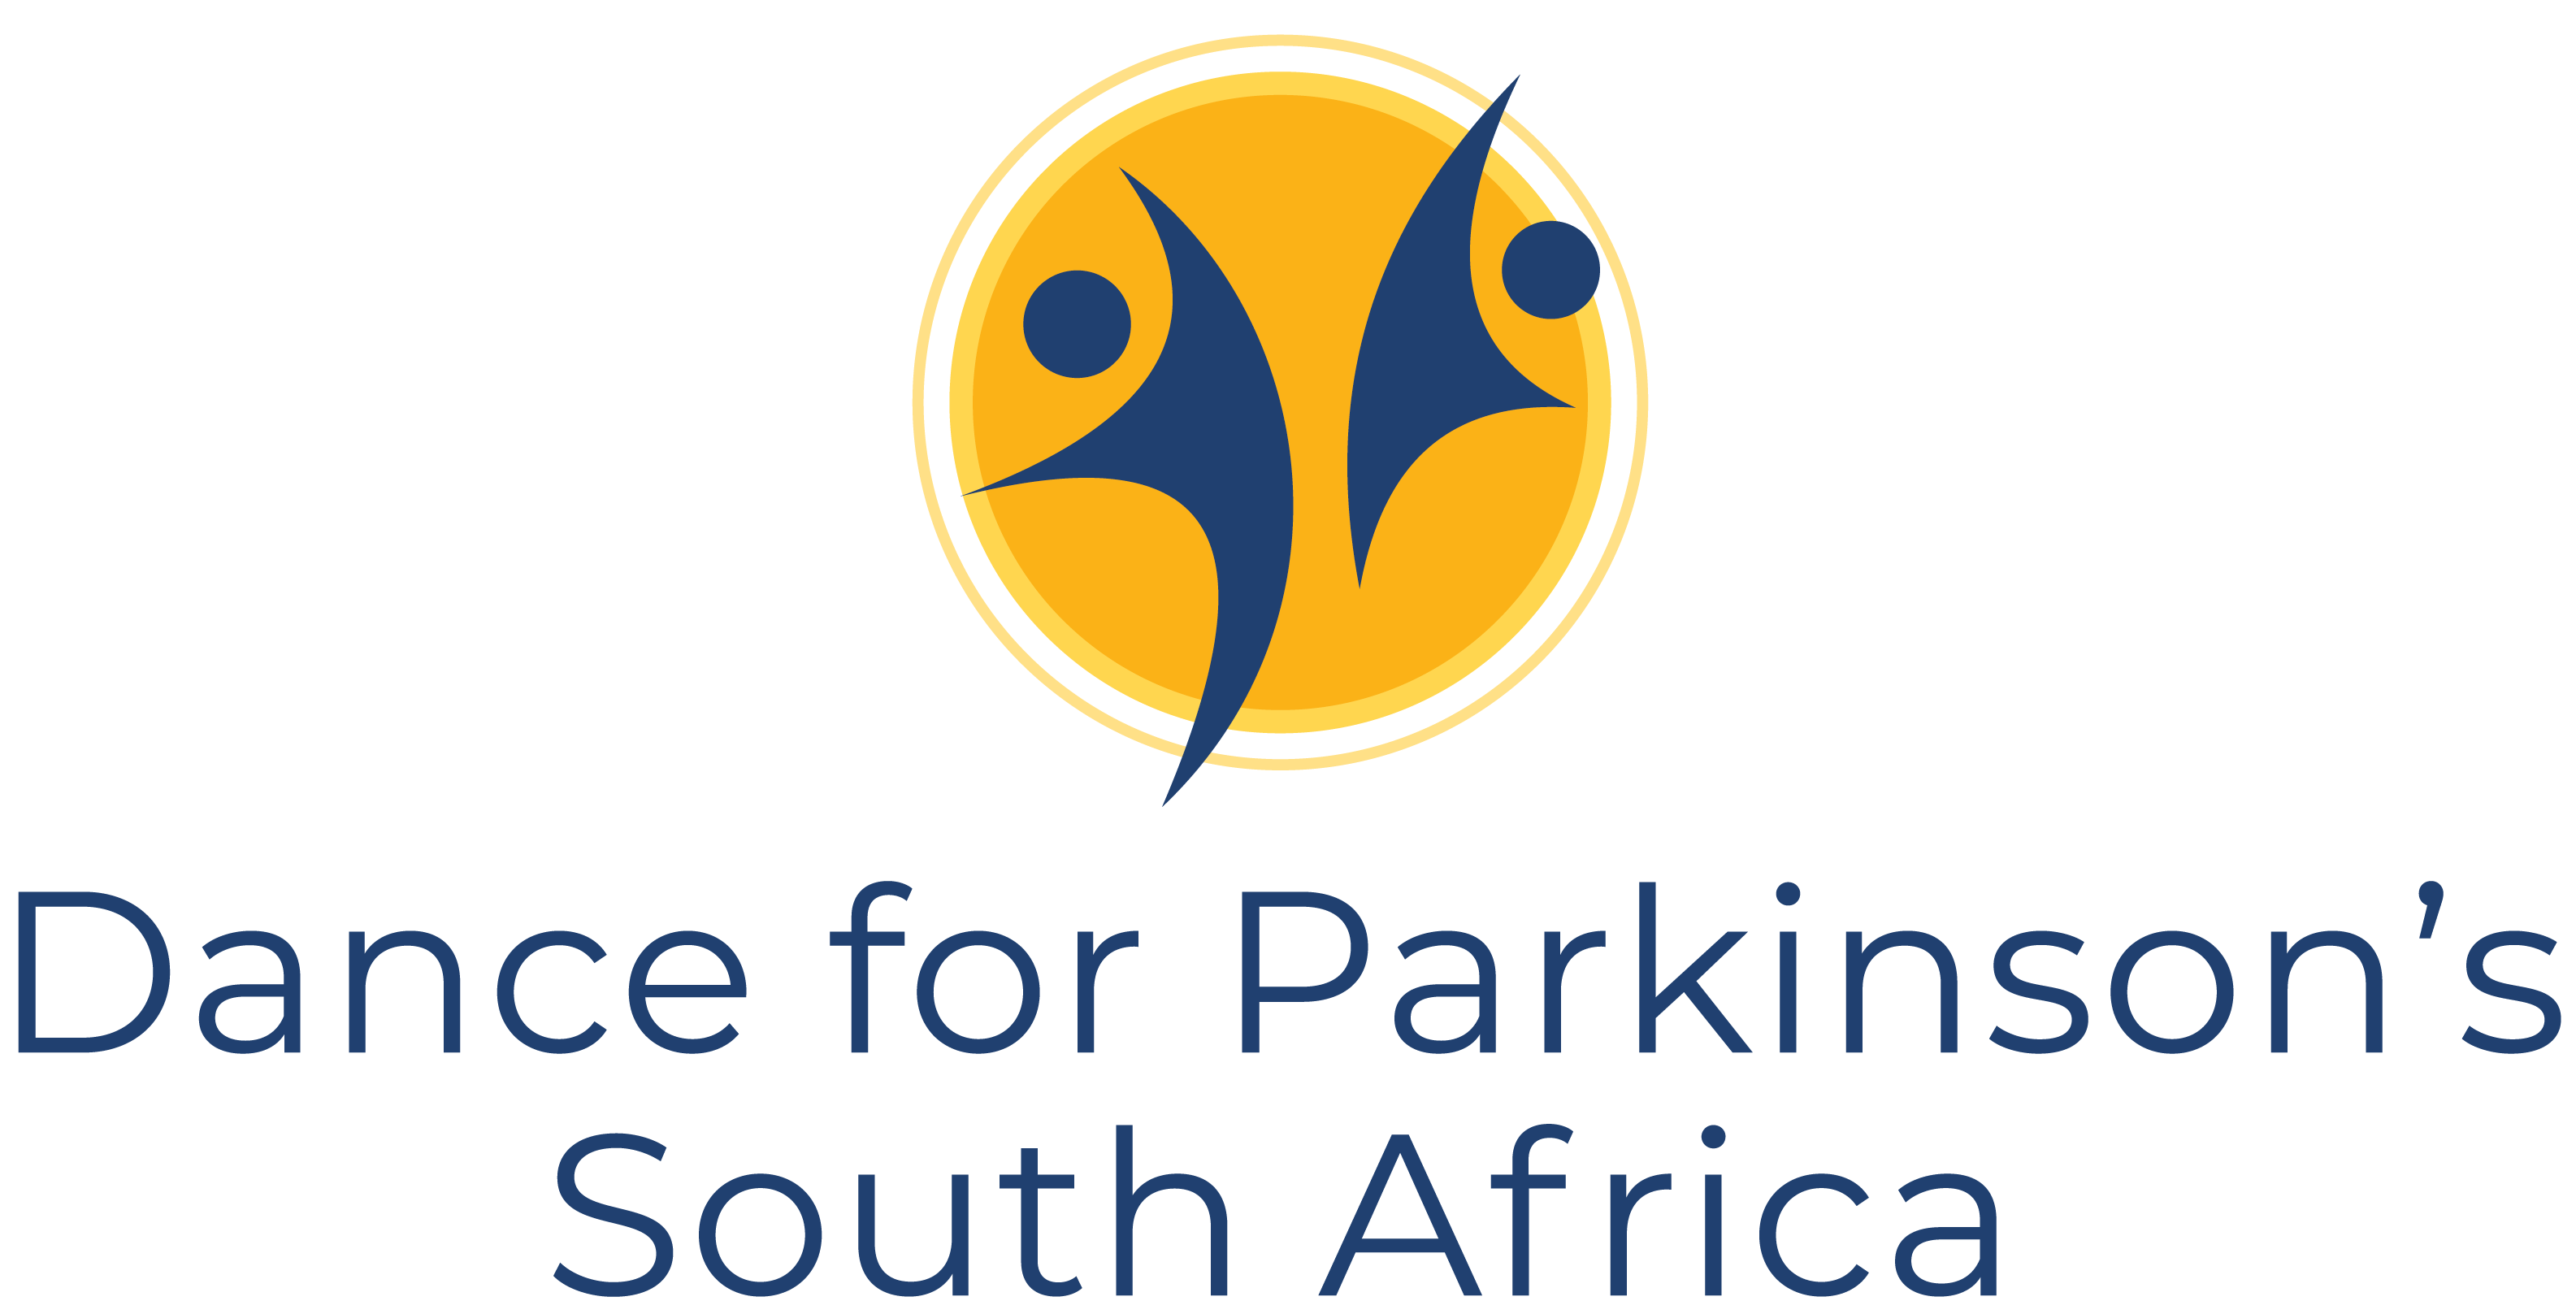 Dance for Parkinsons' South Africa